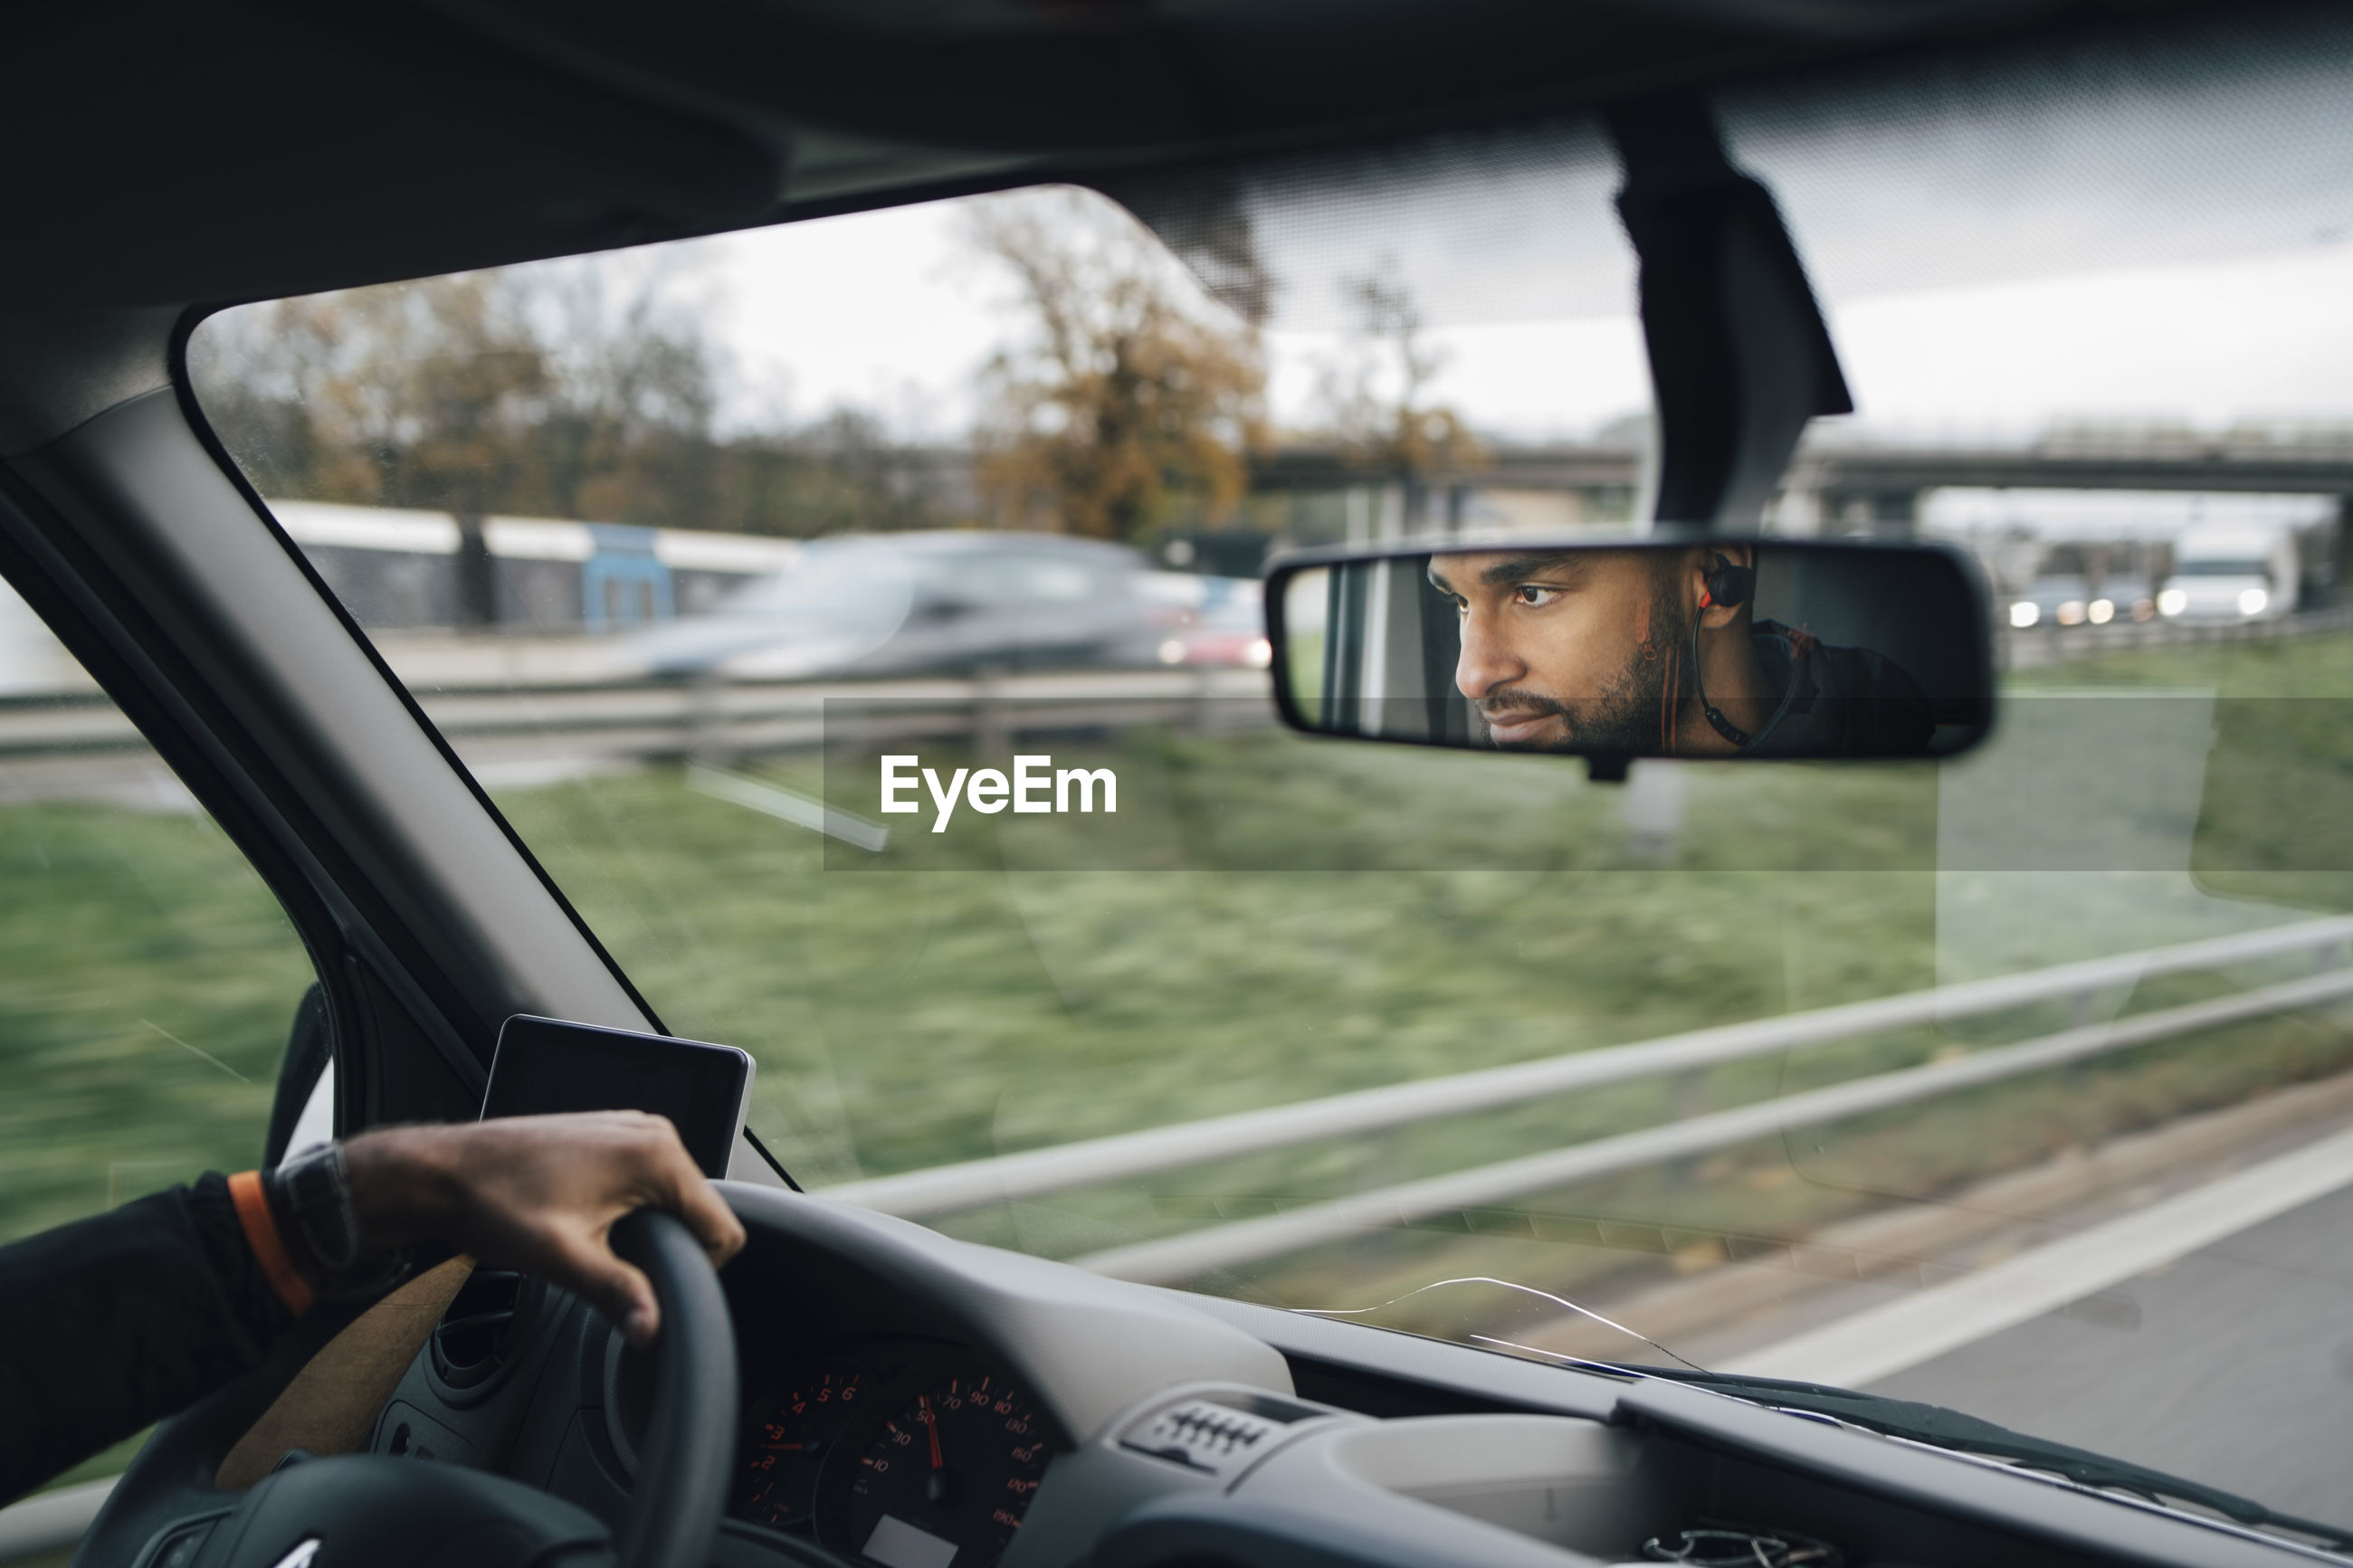 PORTRAIT OF MAN PHOTOGRAPHING THROUGH CAR